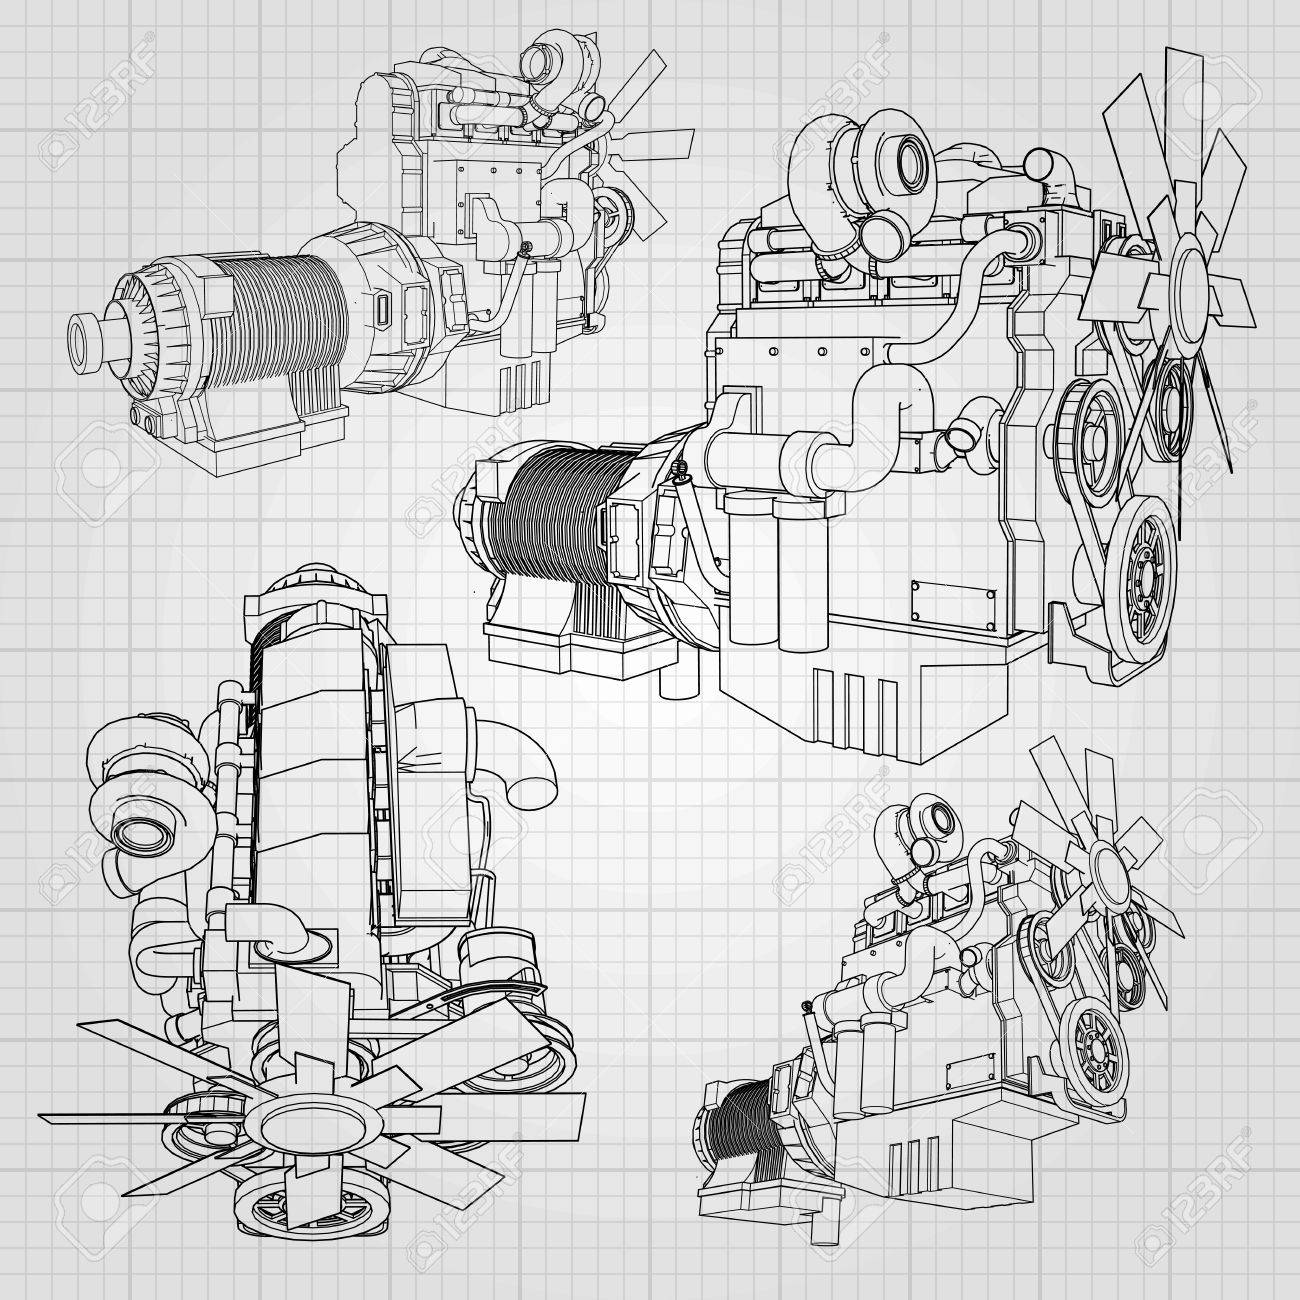 hight resolution of a big diesel engine with the truck depicted in the contour lines on graph paper